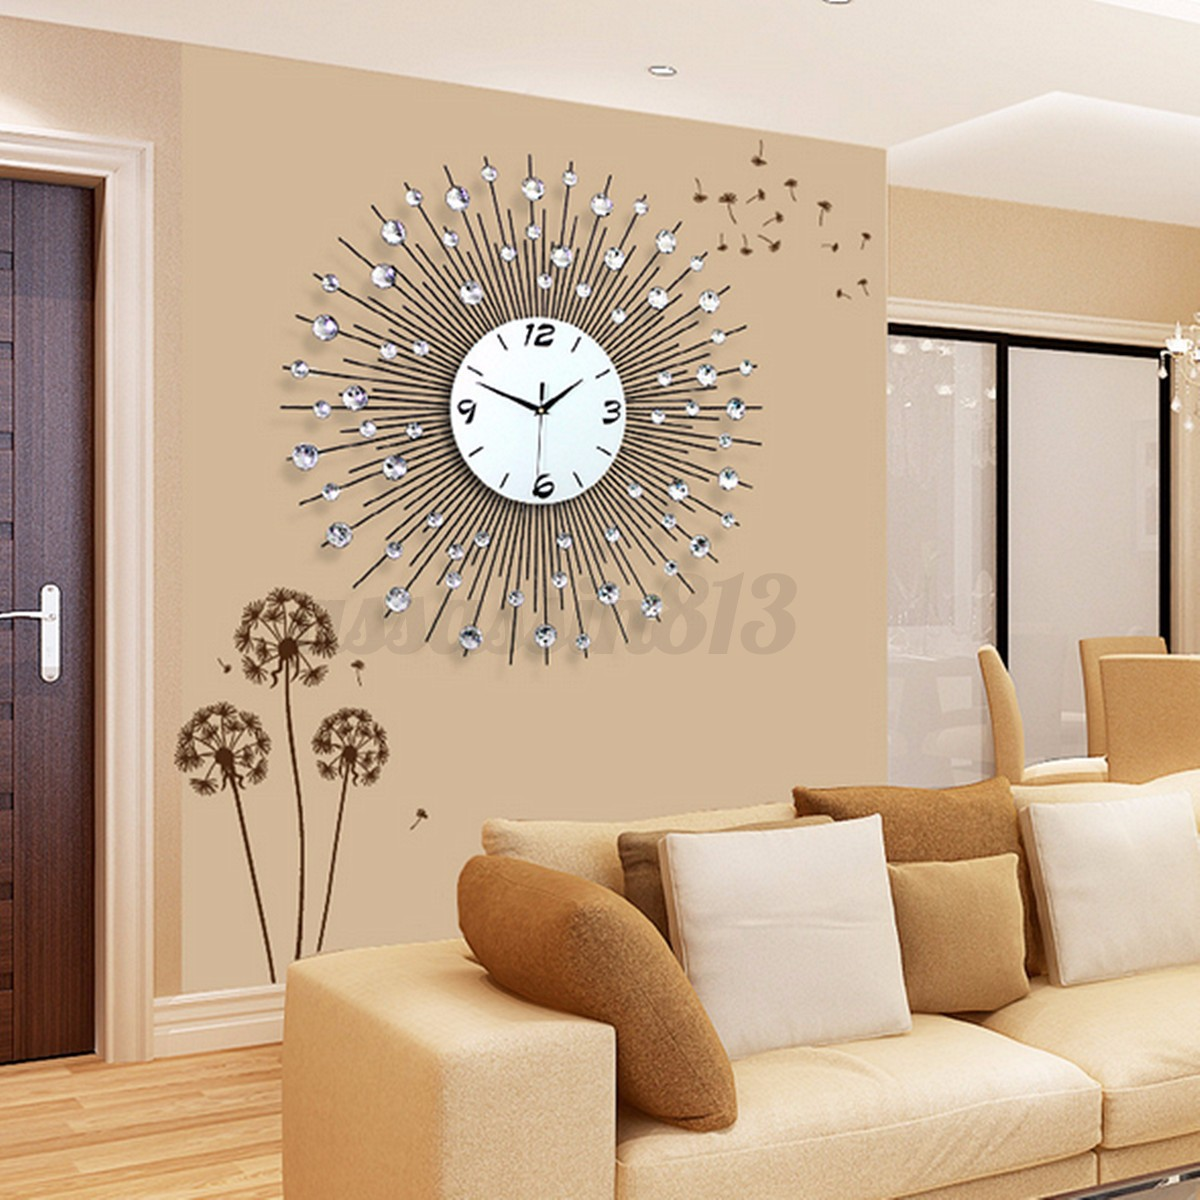 wall clock for living room online store cheery living room furniture ideas together with any. Black Bedroom Furniture Sets. Home Design Ideas